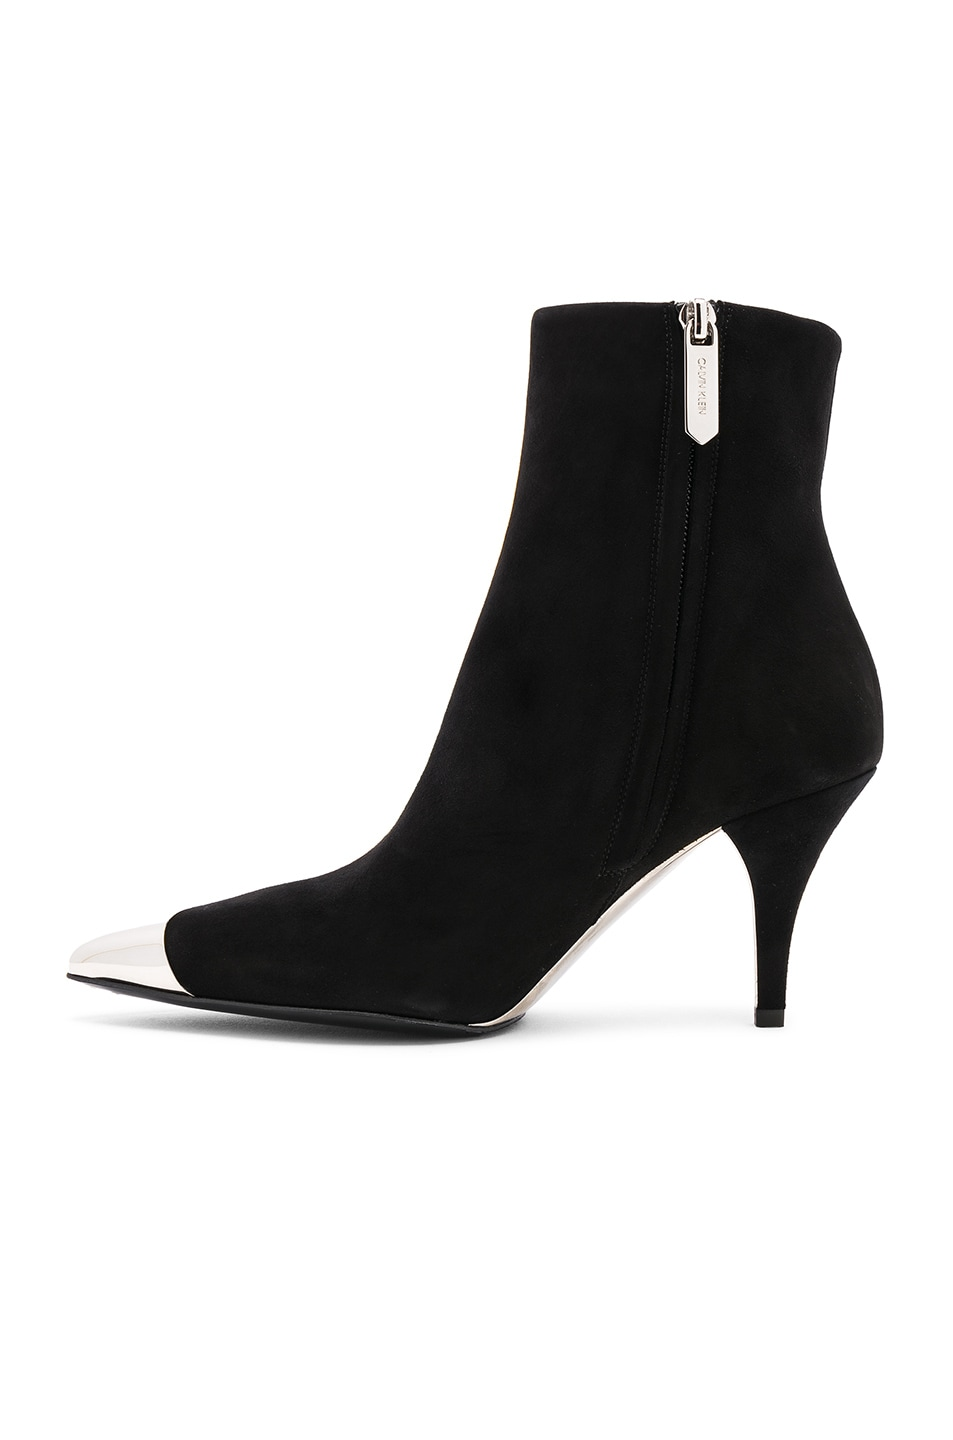 Image 5 of CALVIN KLEIN 205W39NYC Suede Rocio Stiletto Boots in Black